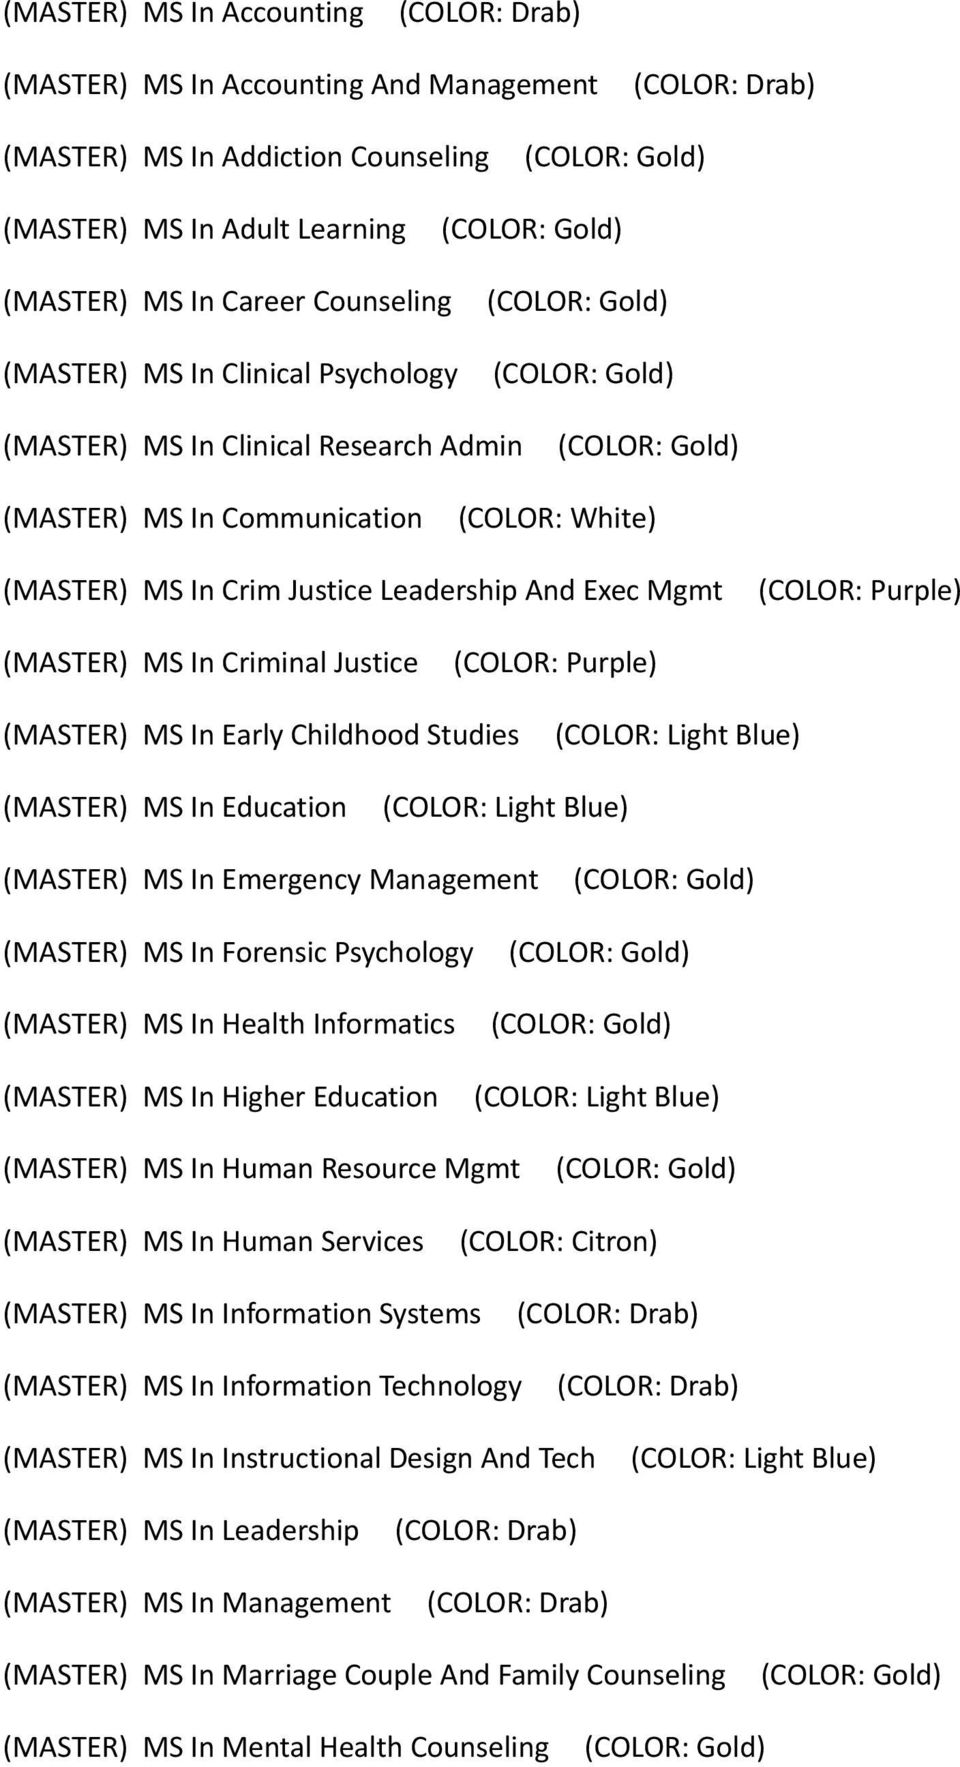 (MASTER) MS In Early Childhood Studies (MASTER) MS In Education (MASTER) MS In Emergency Management (MASTER) MS In Forensic Psychology (MASTER) MS In Health Informatics (MASTER) MS In Higher